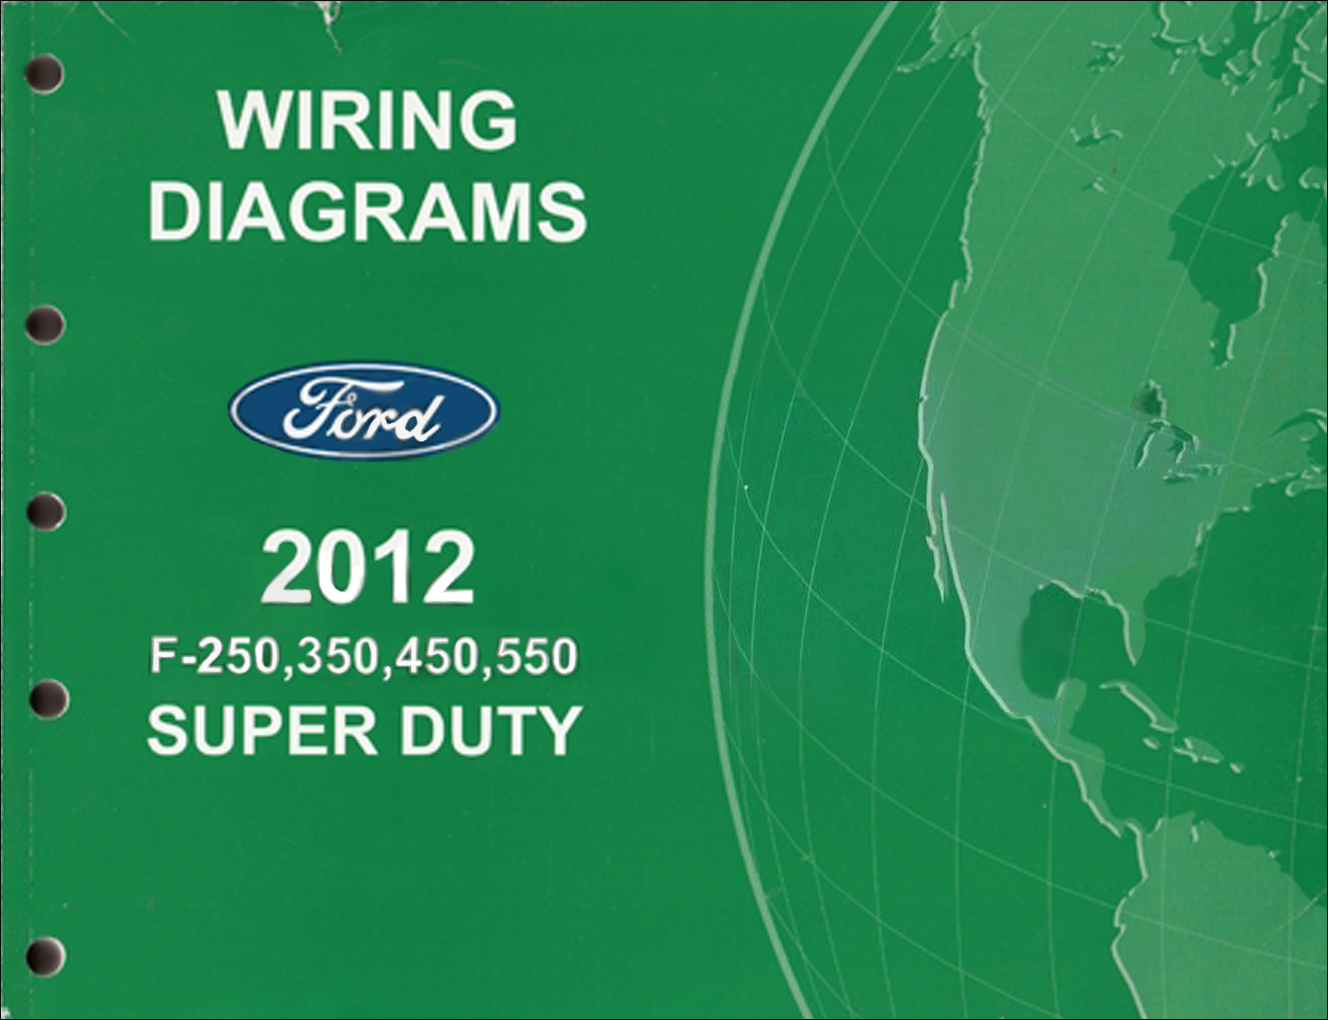 2012 Ford Wiring Diagram Schemes Goldwing F 250 Thru 550 Super Duty Manual Original Truck Diagrams